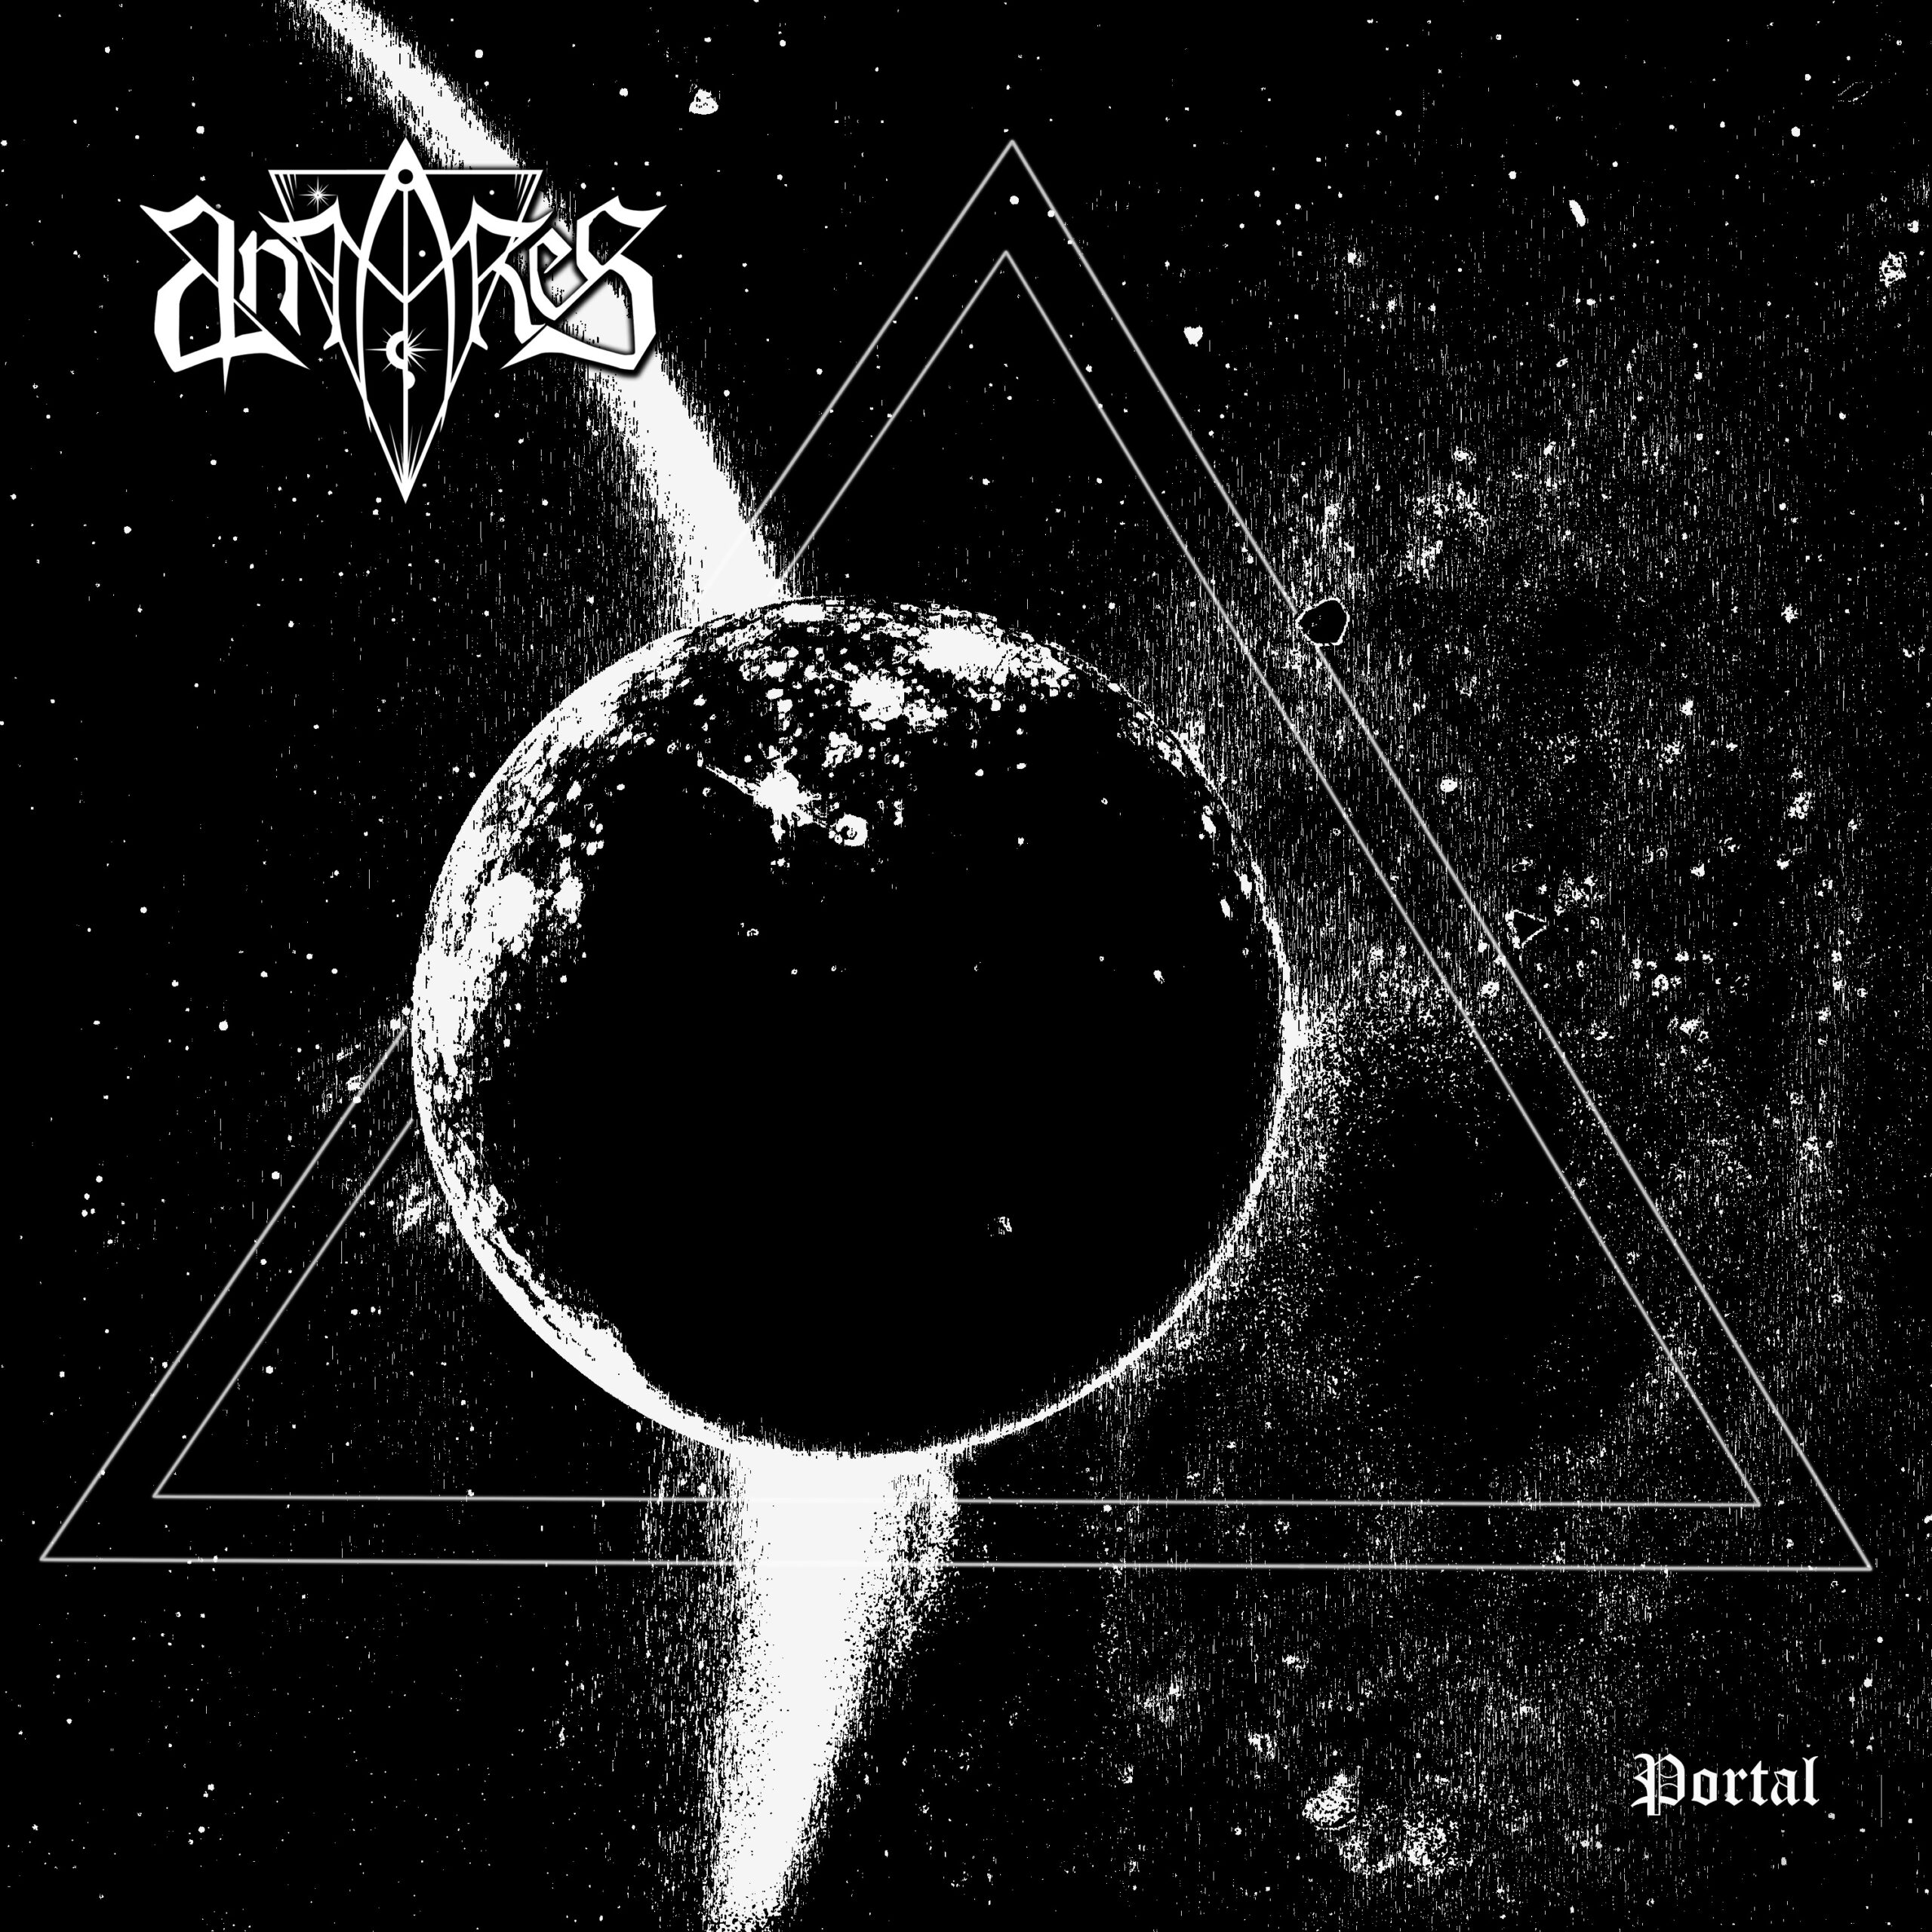 """You are currently viewing ANTΑRES: Debüt-EP """"Portal"""" komplett im Stream"""